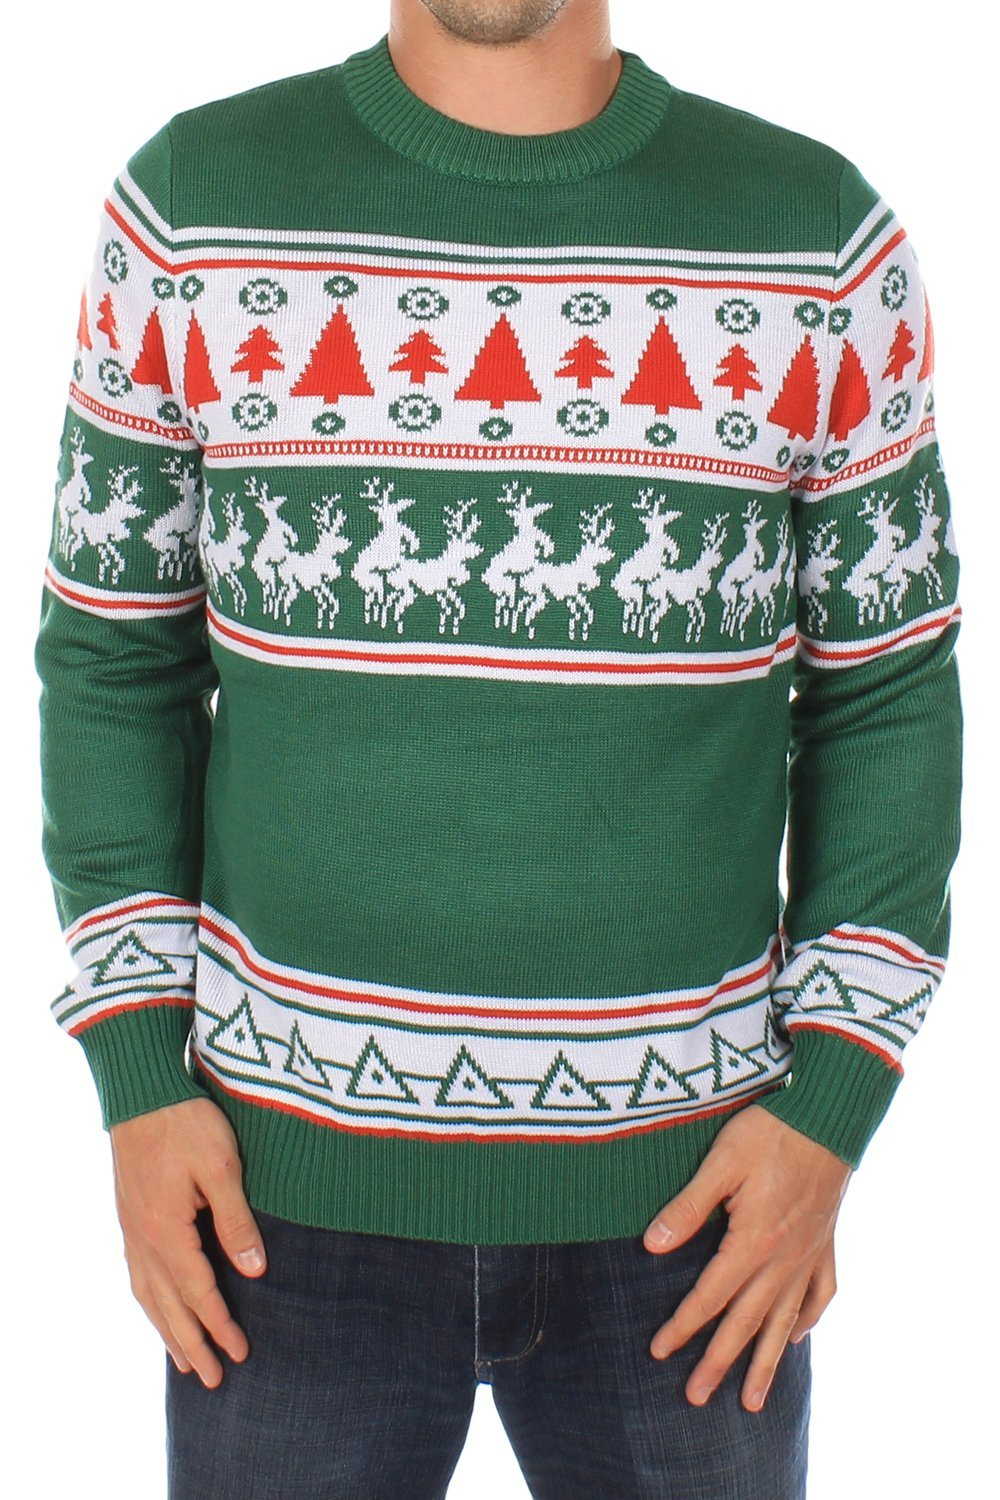 A similar holiday sweater.